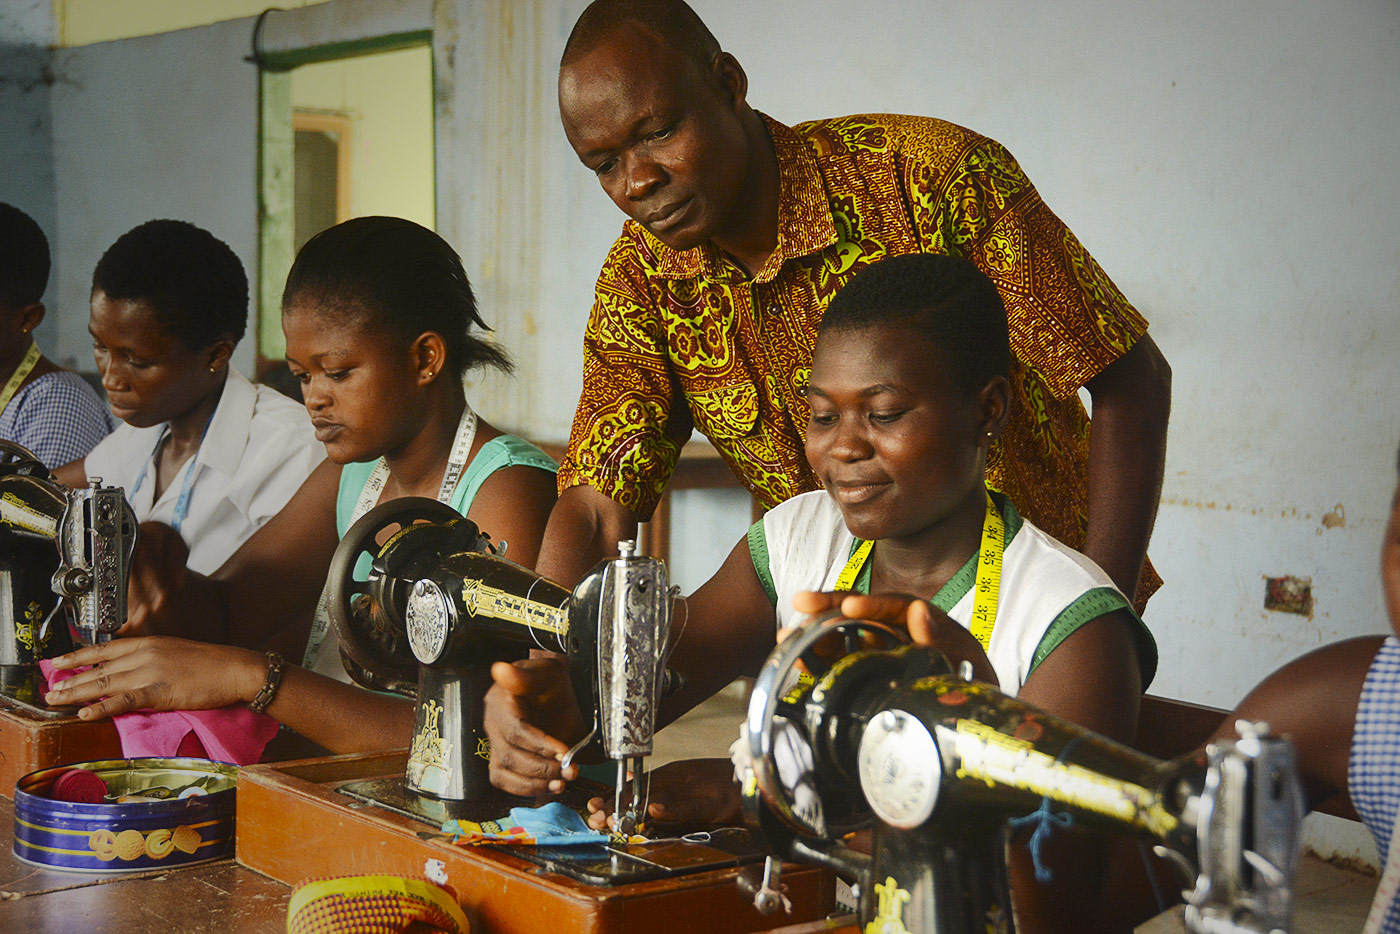 Our work in Ghana | Compassion Australia